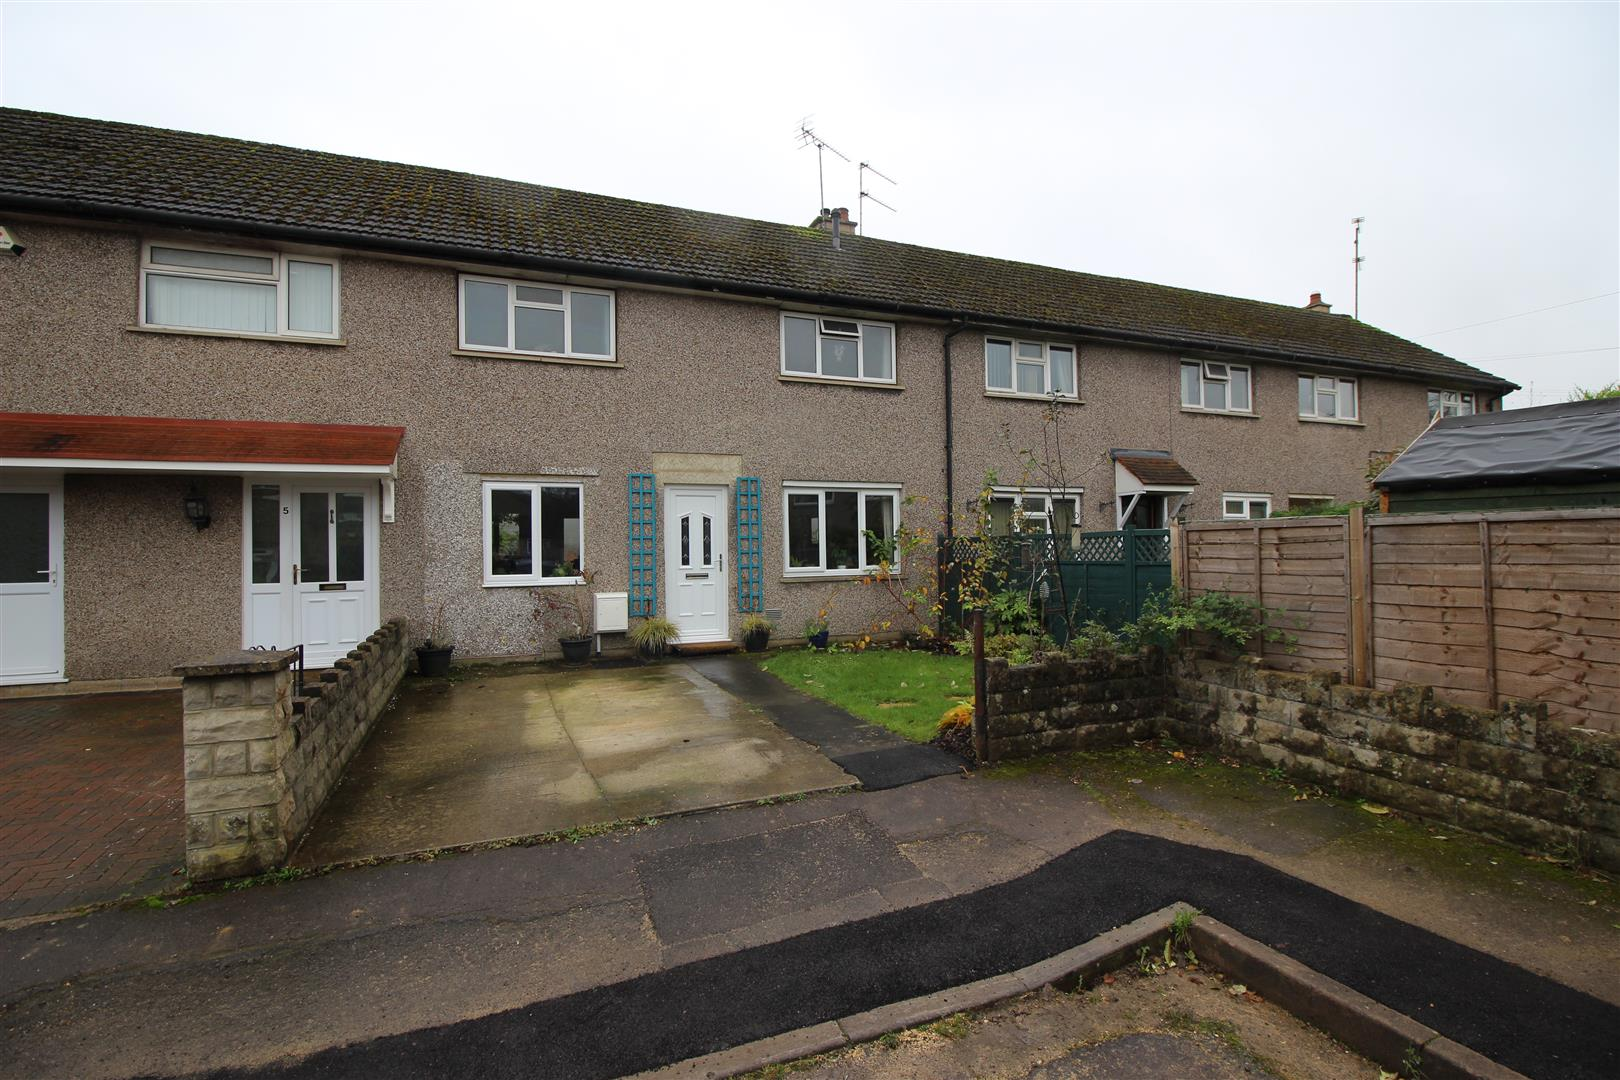 3 Bedrooms Terraced House for sale in Honeybrook Close, Chippenham